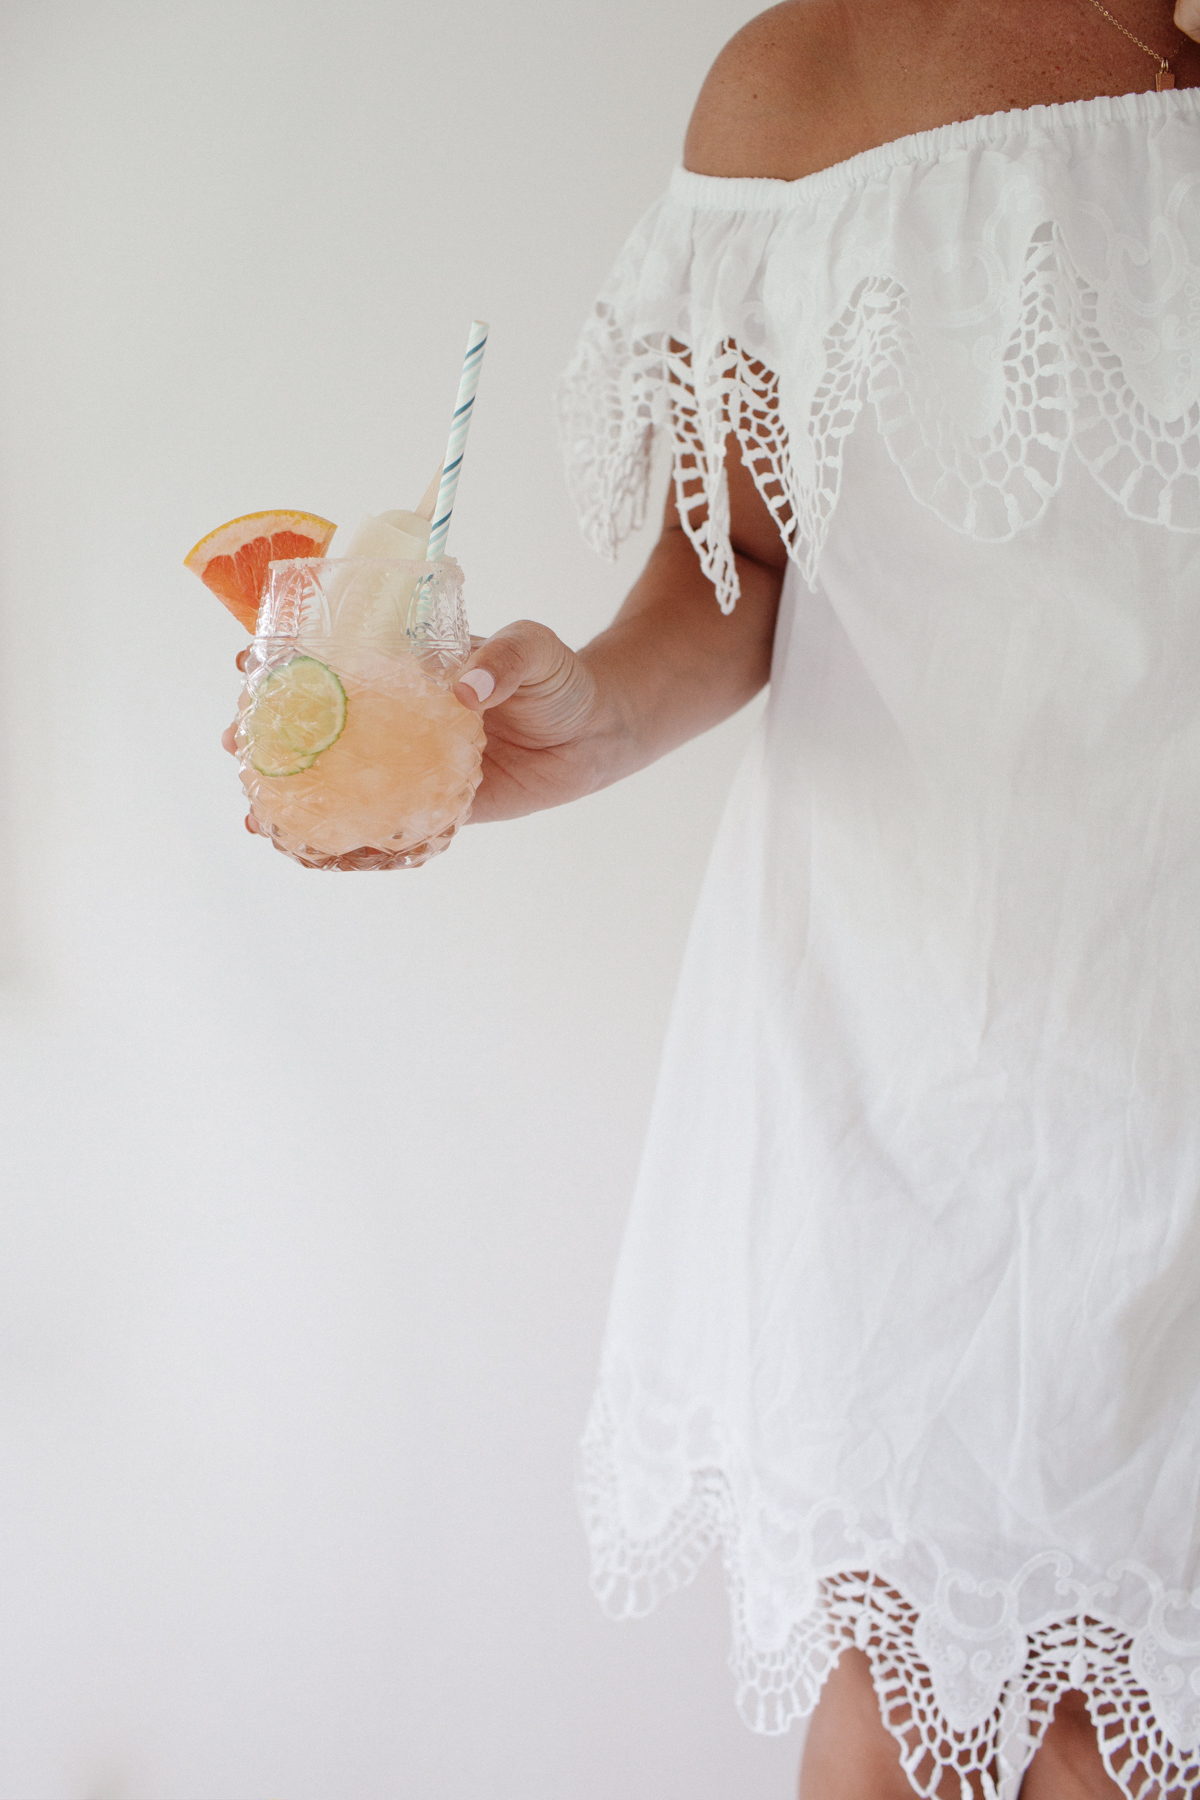 Monika wearing a white dress and holding a glass of grapefruit juice